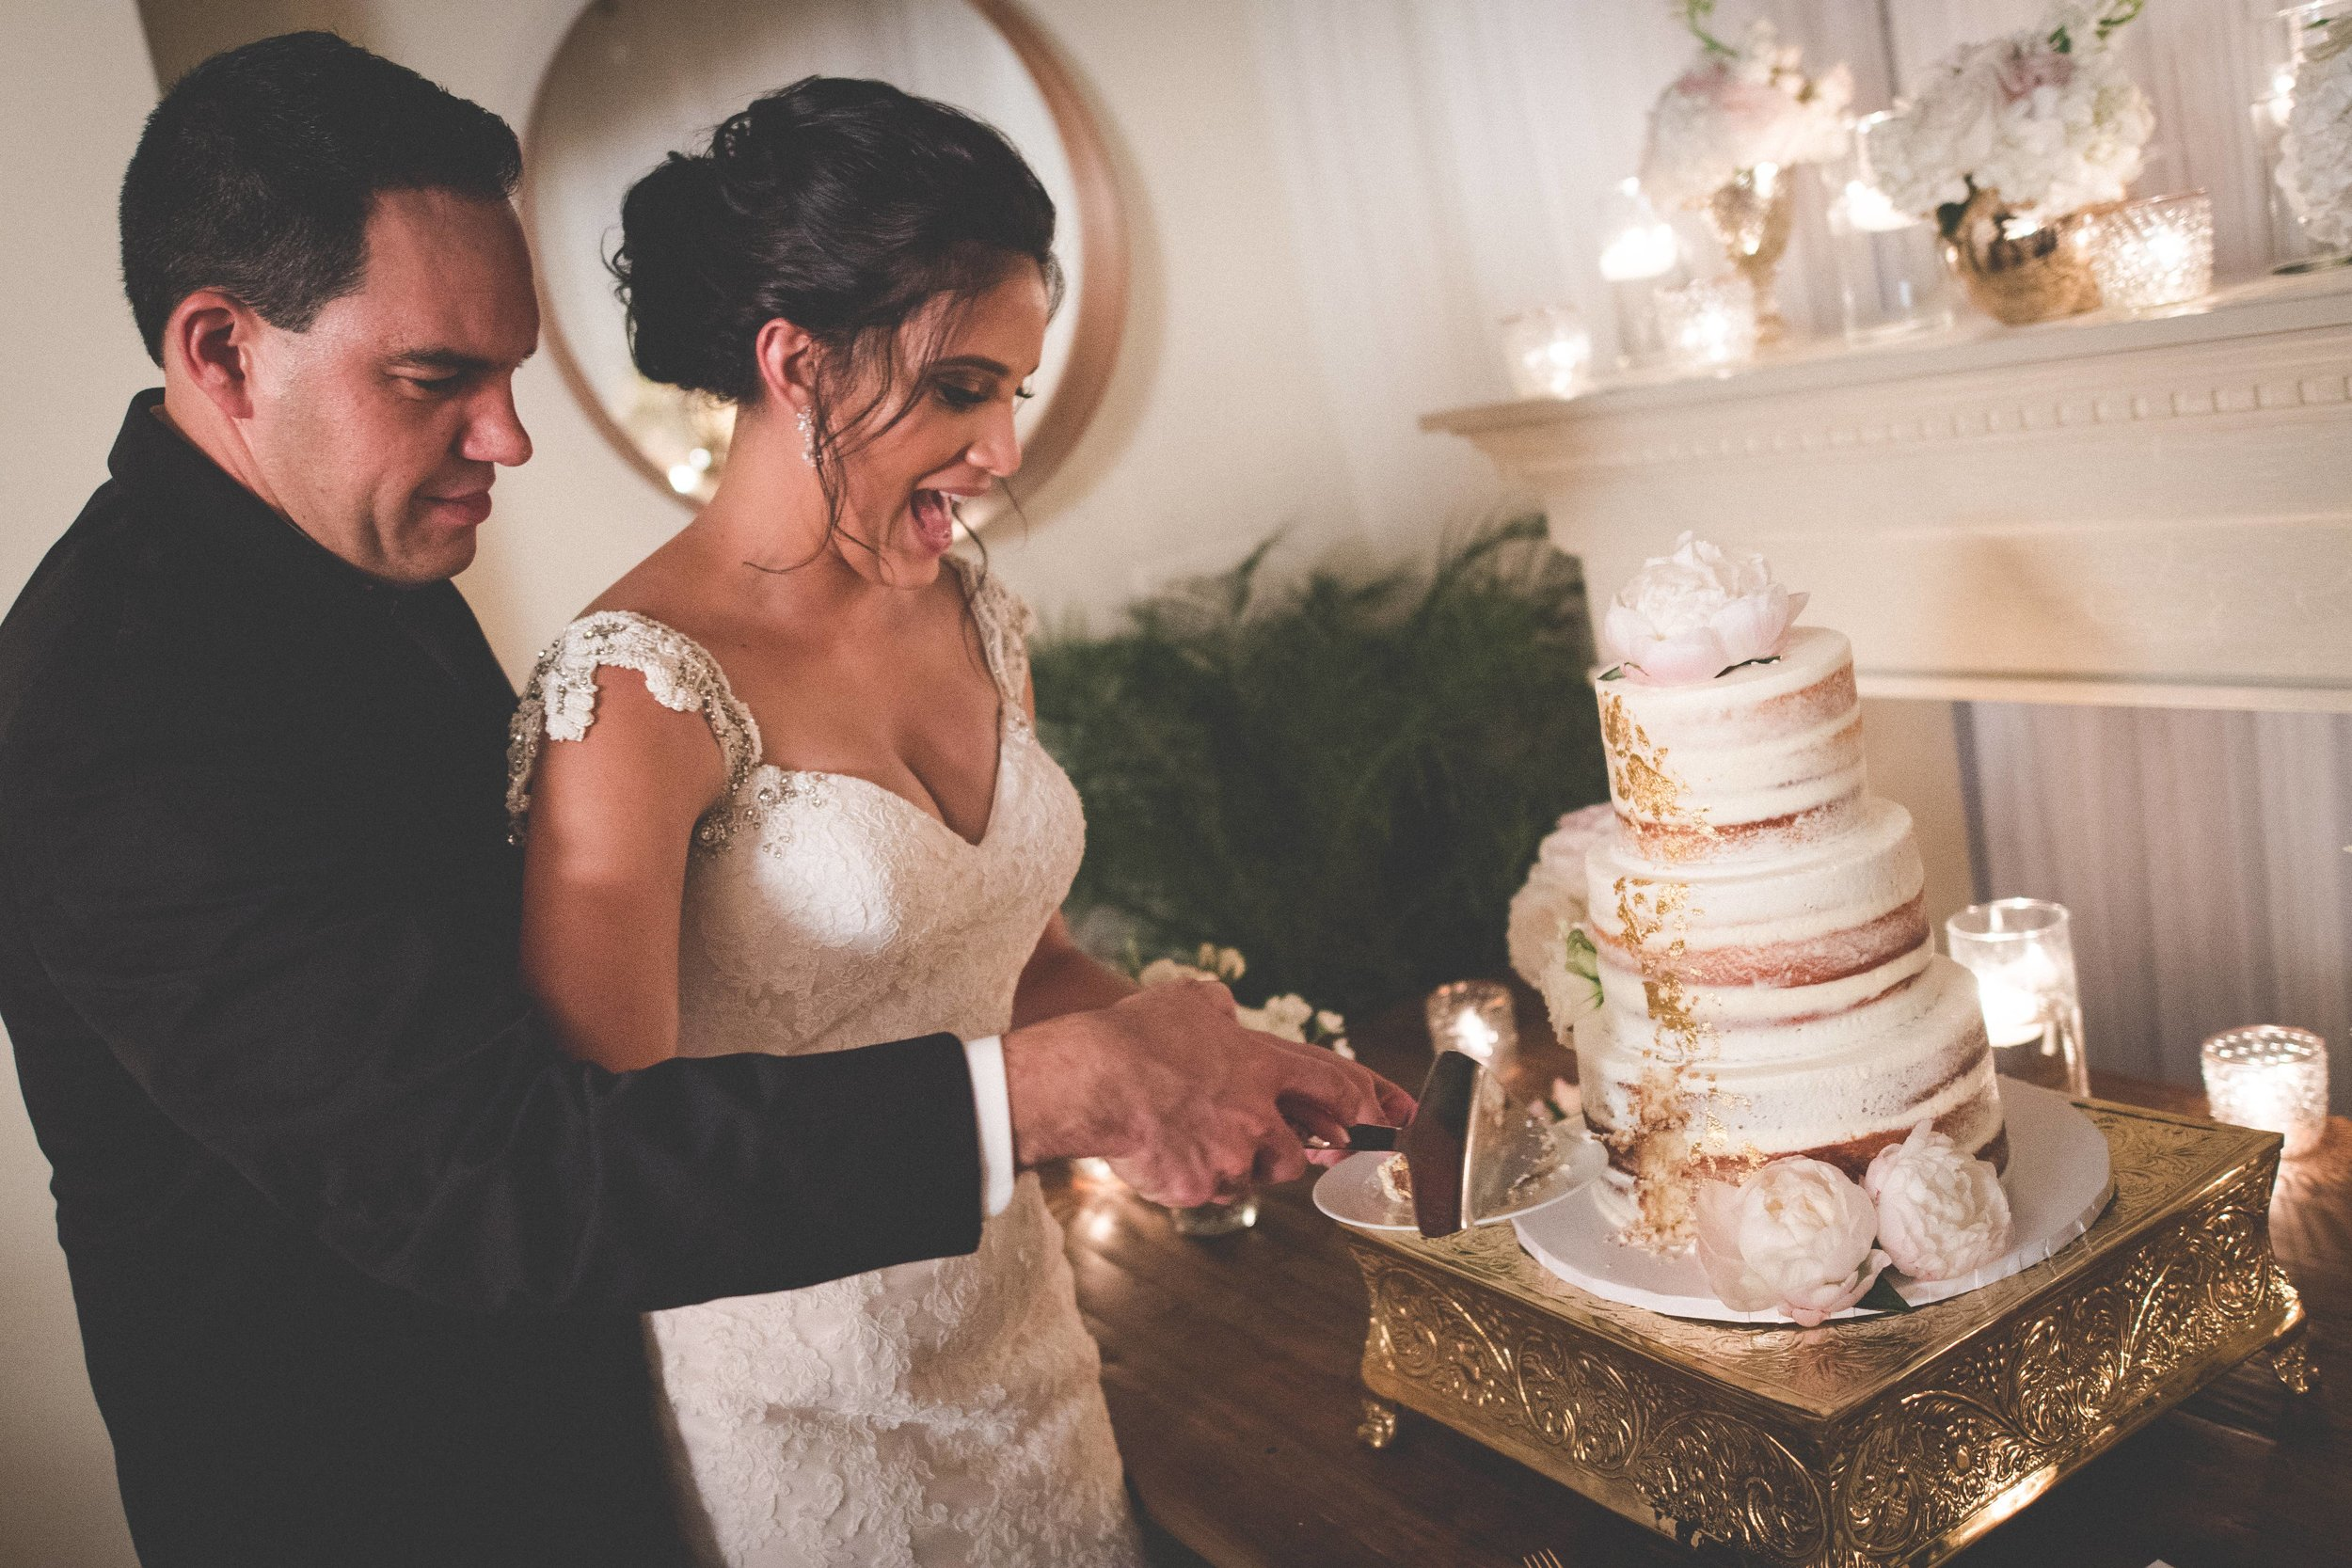 Together the couple cut into their gorgeous cake amongst their closest friends and family.